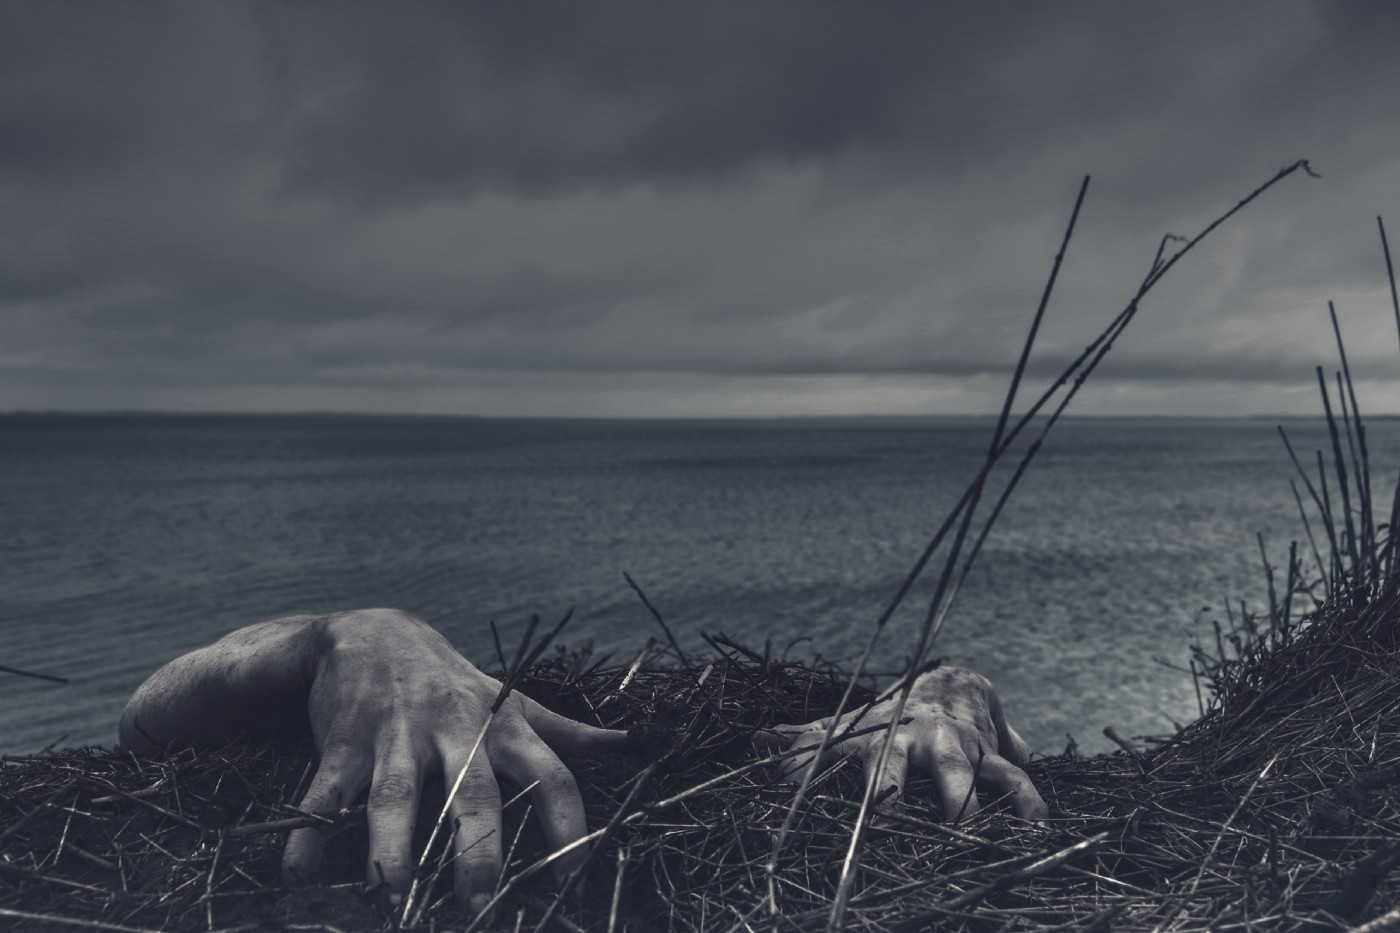 Photo of scary hands reaching up over a cliff